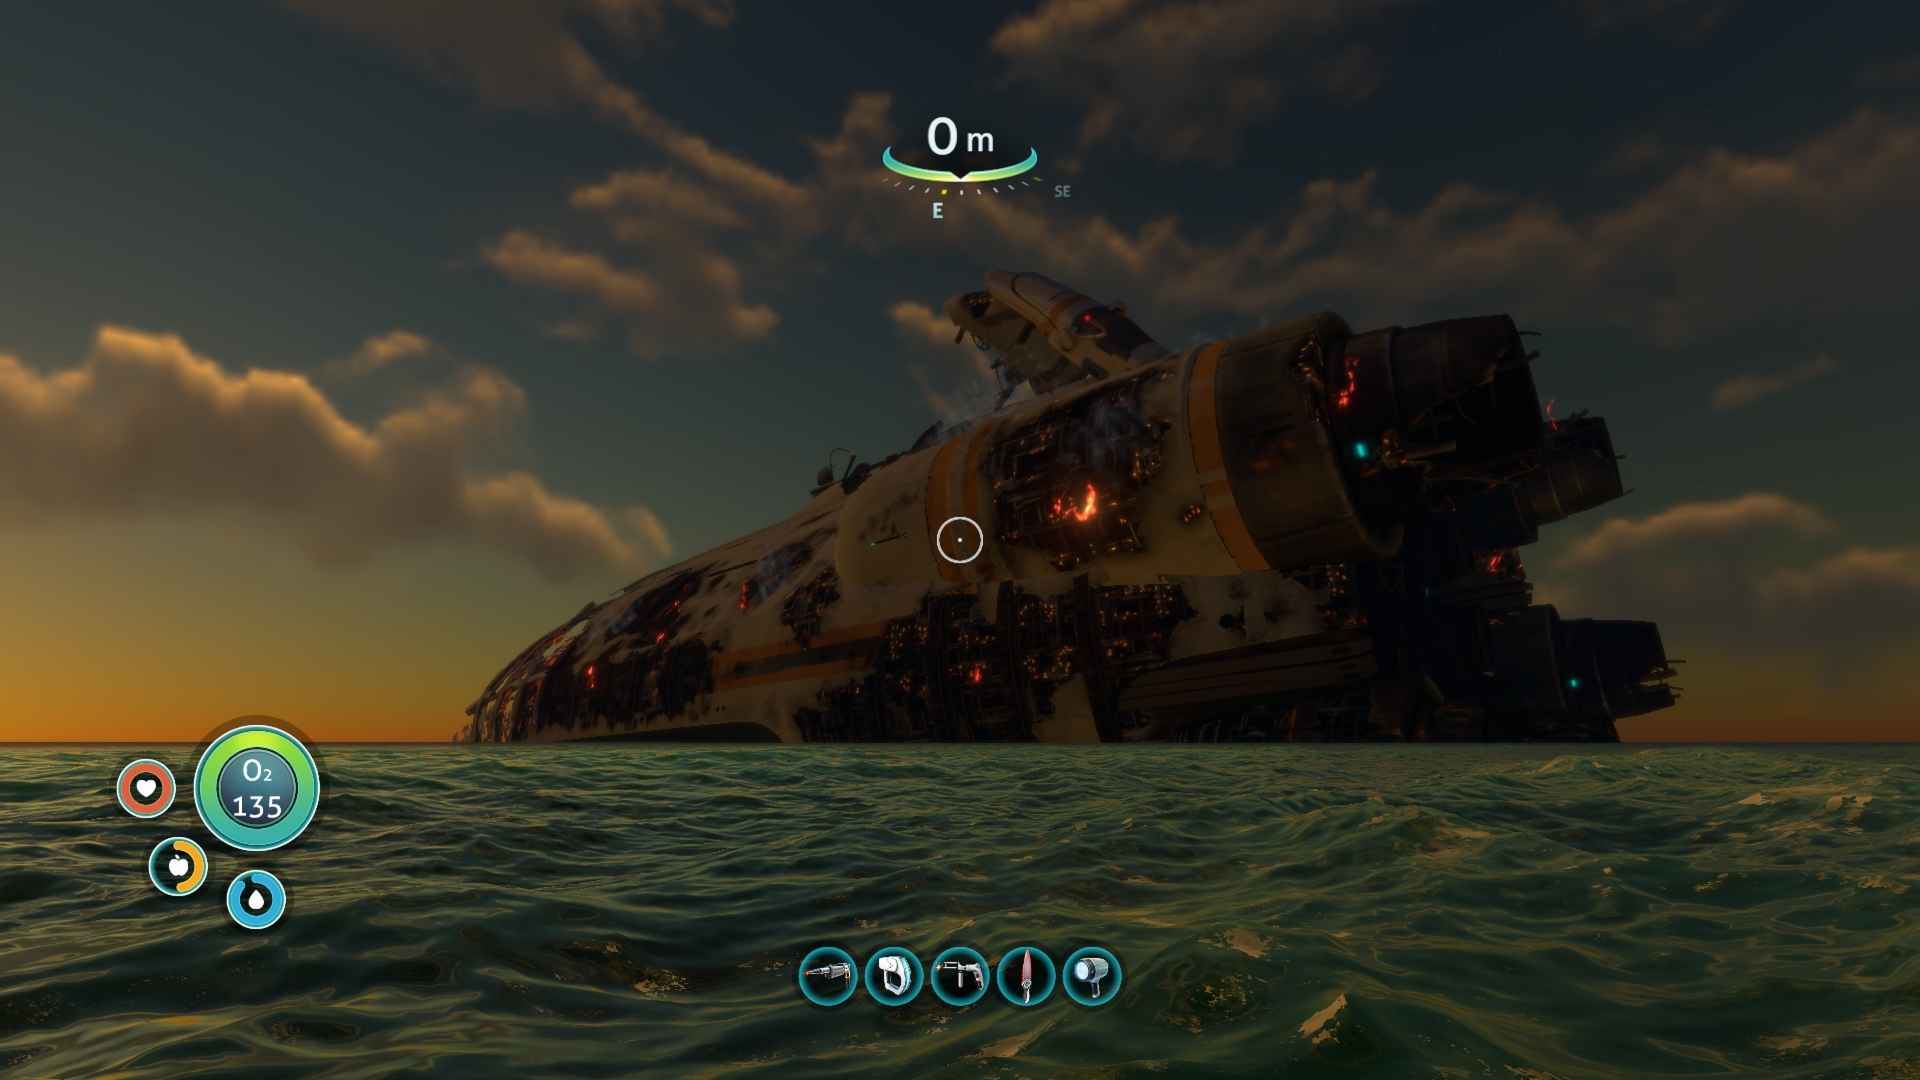 Subnautica Review Ps4 Playstation Universe Mods i've created for subnautica. subnautica review ps4 playstation